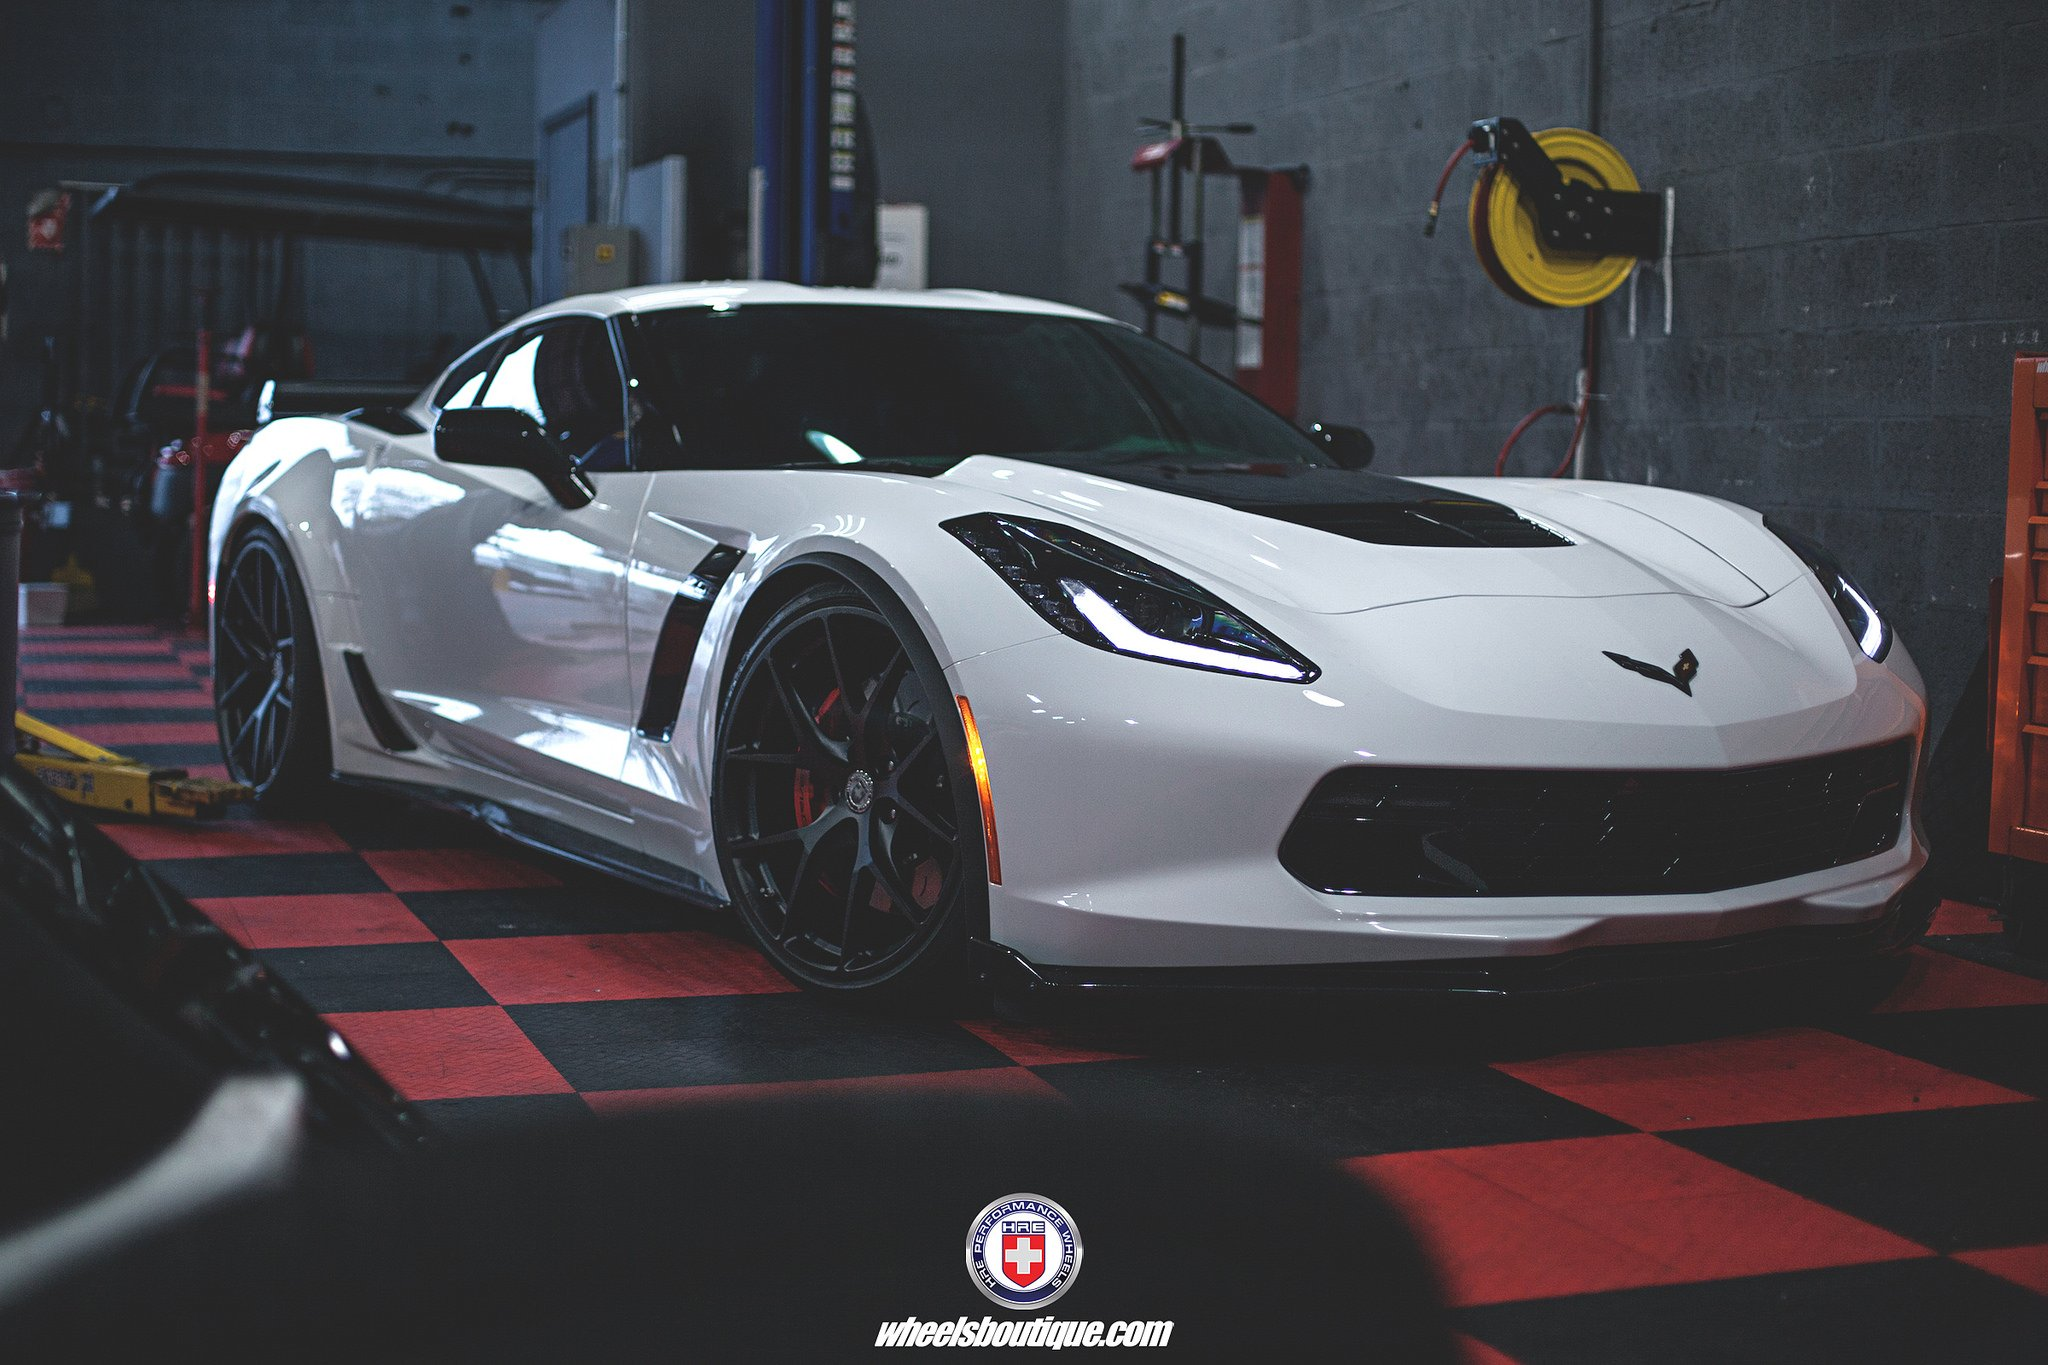 chevy corvette c7 z06 hre wheels coupe cars white wallpaper 2048x1365 809172 wallpaperup - Corvette C7 Z06 White